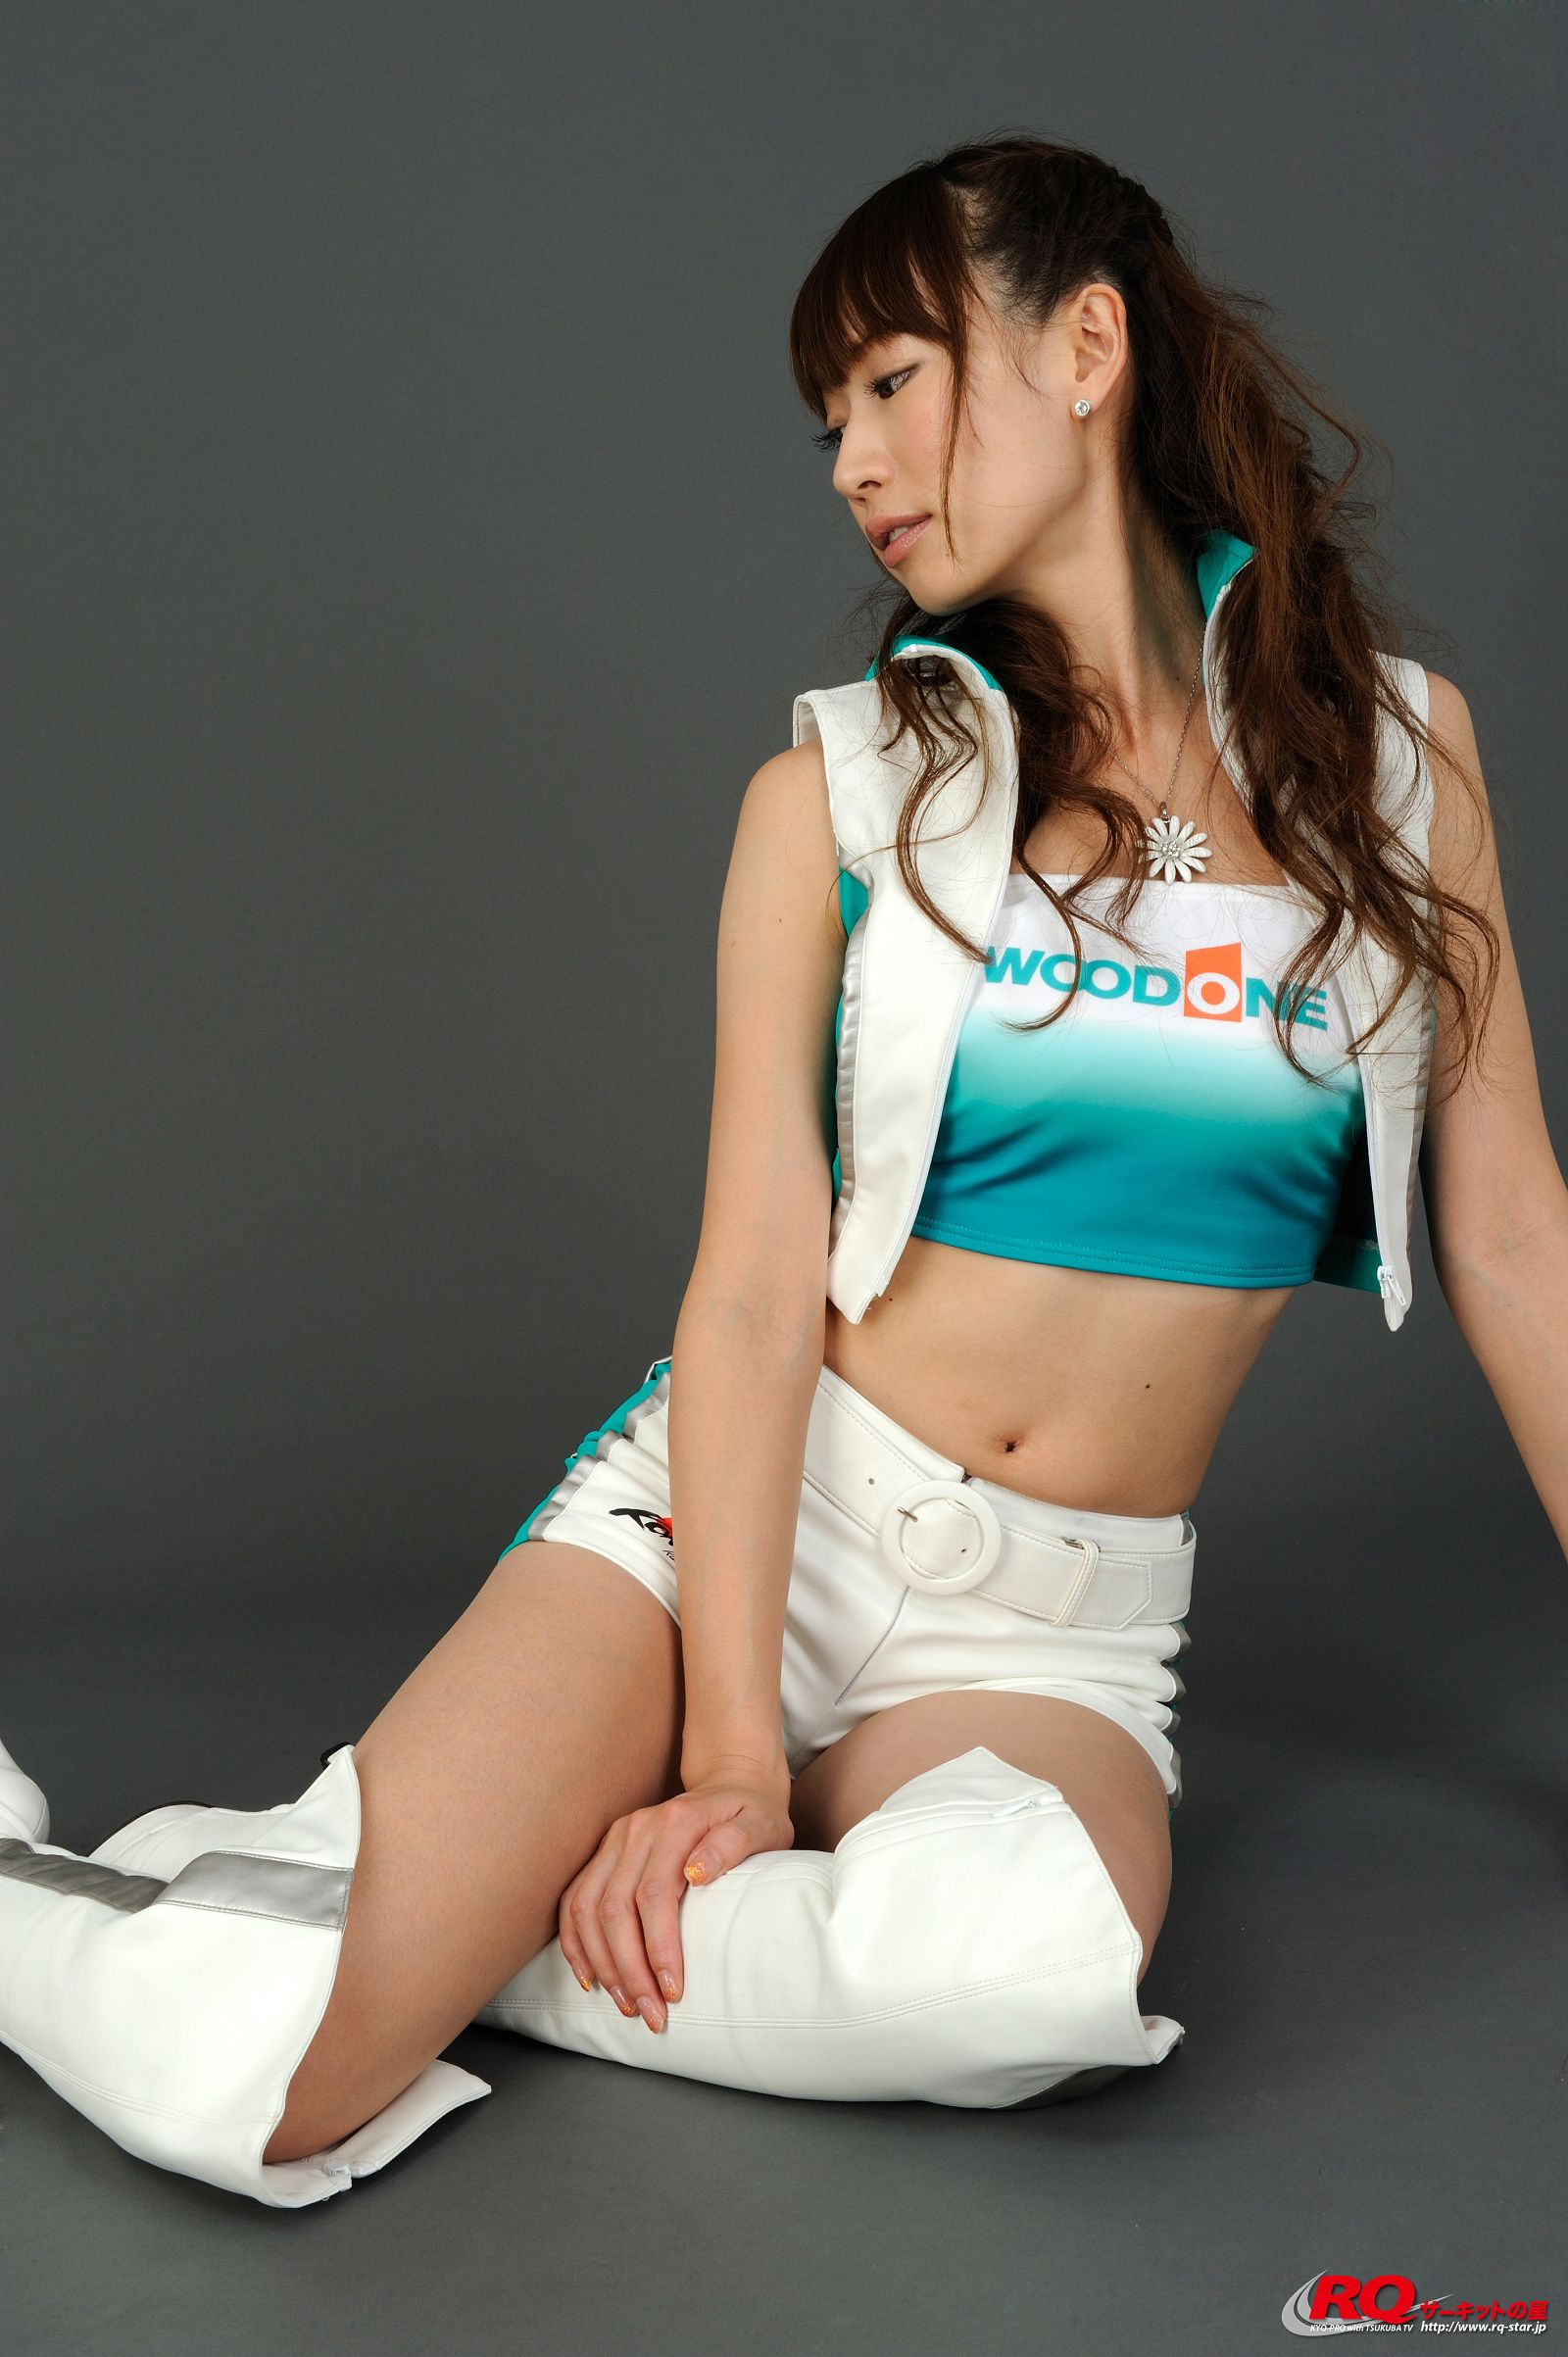 [RQ STAR美女] NO.00112 Rina Yamamoto 山本里奈 Race Queen[120P] RQ STAR 第4张